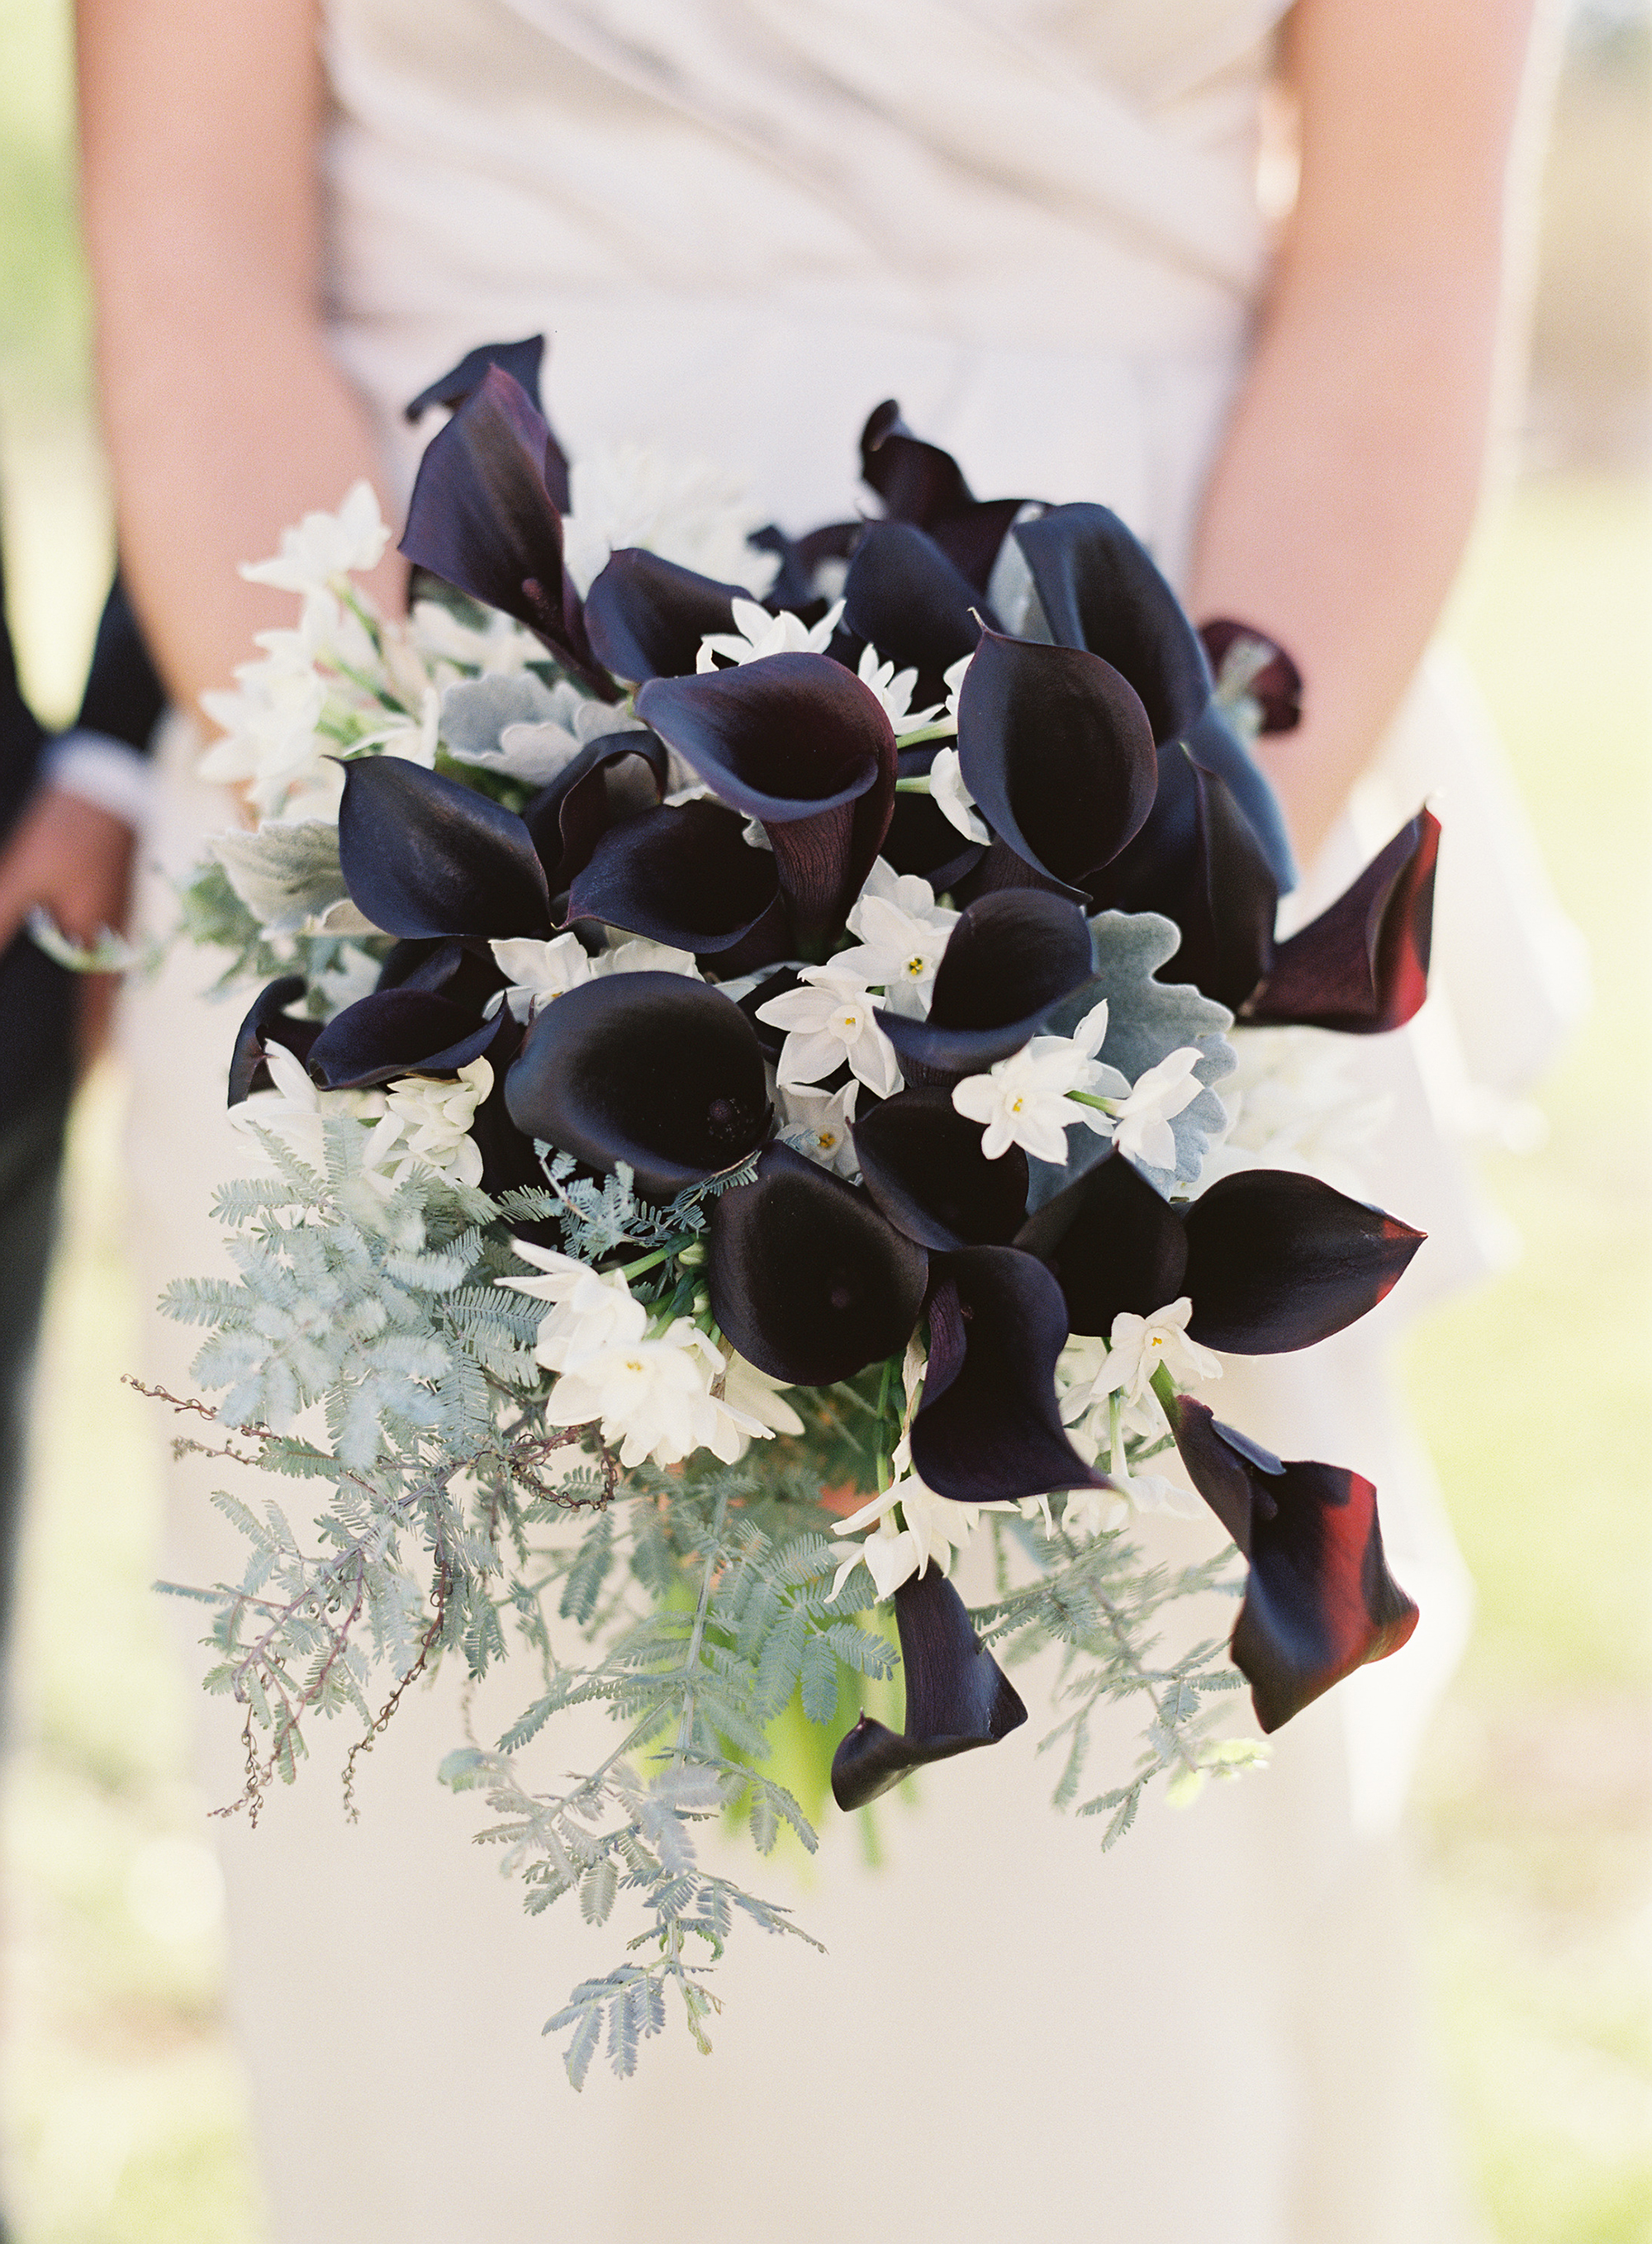 Made With White Roses Few Black Orchids Anemone Real Touch Calla Lilies Baby S Breaths Accented Diamond Jewels And